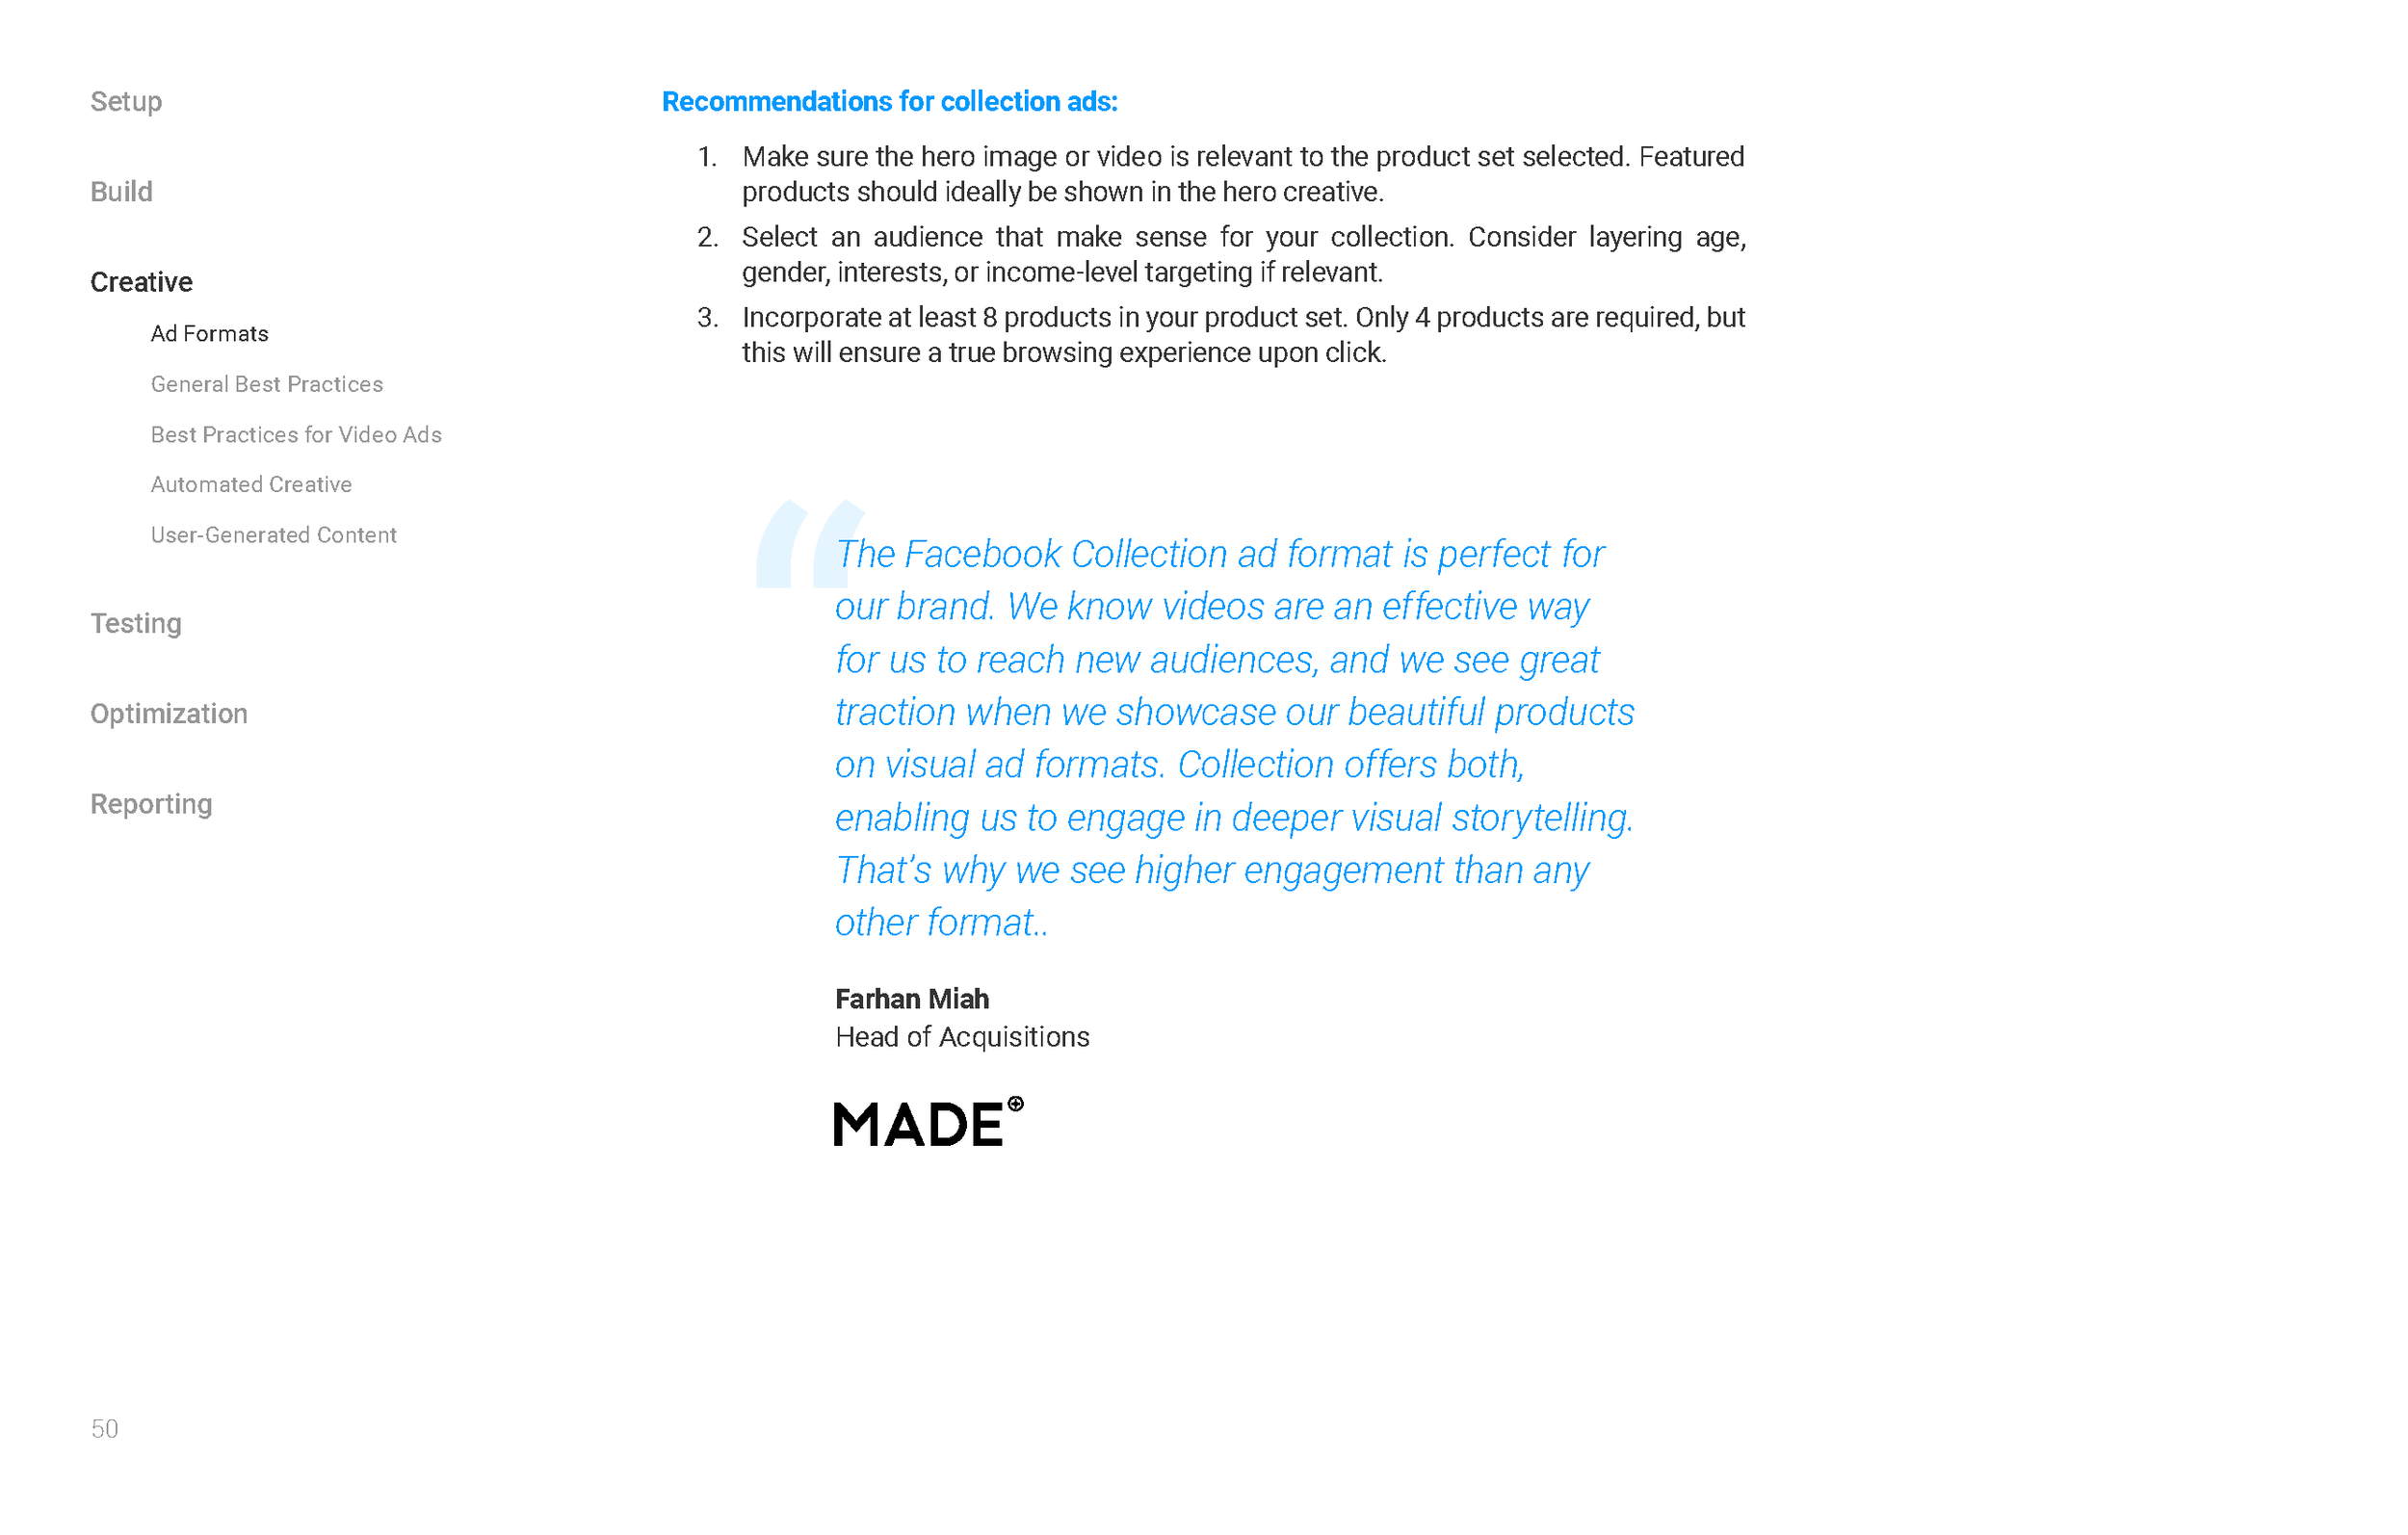 retail playbook _Page_050.png